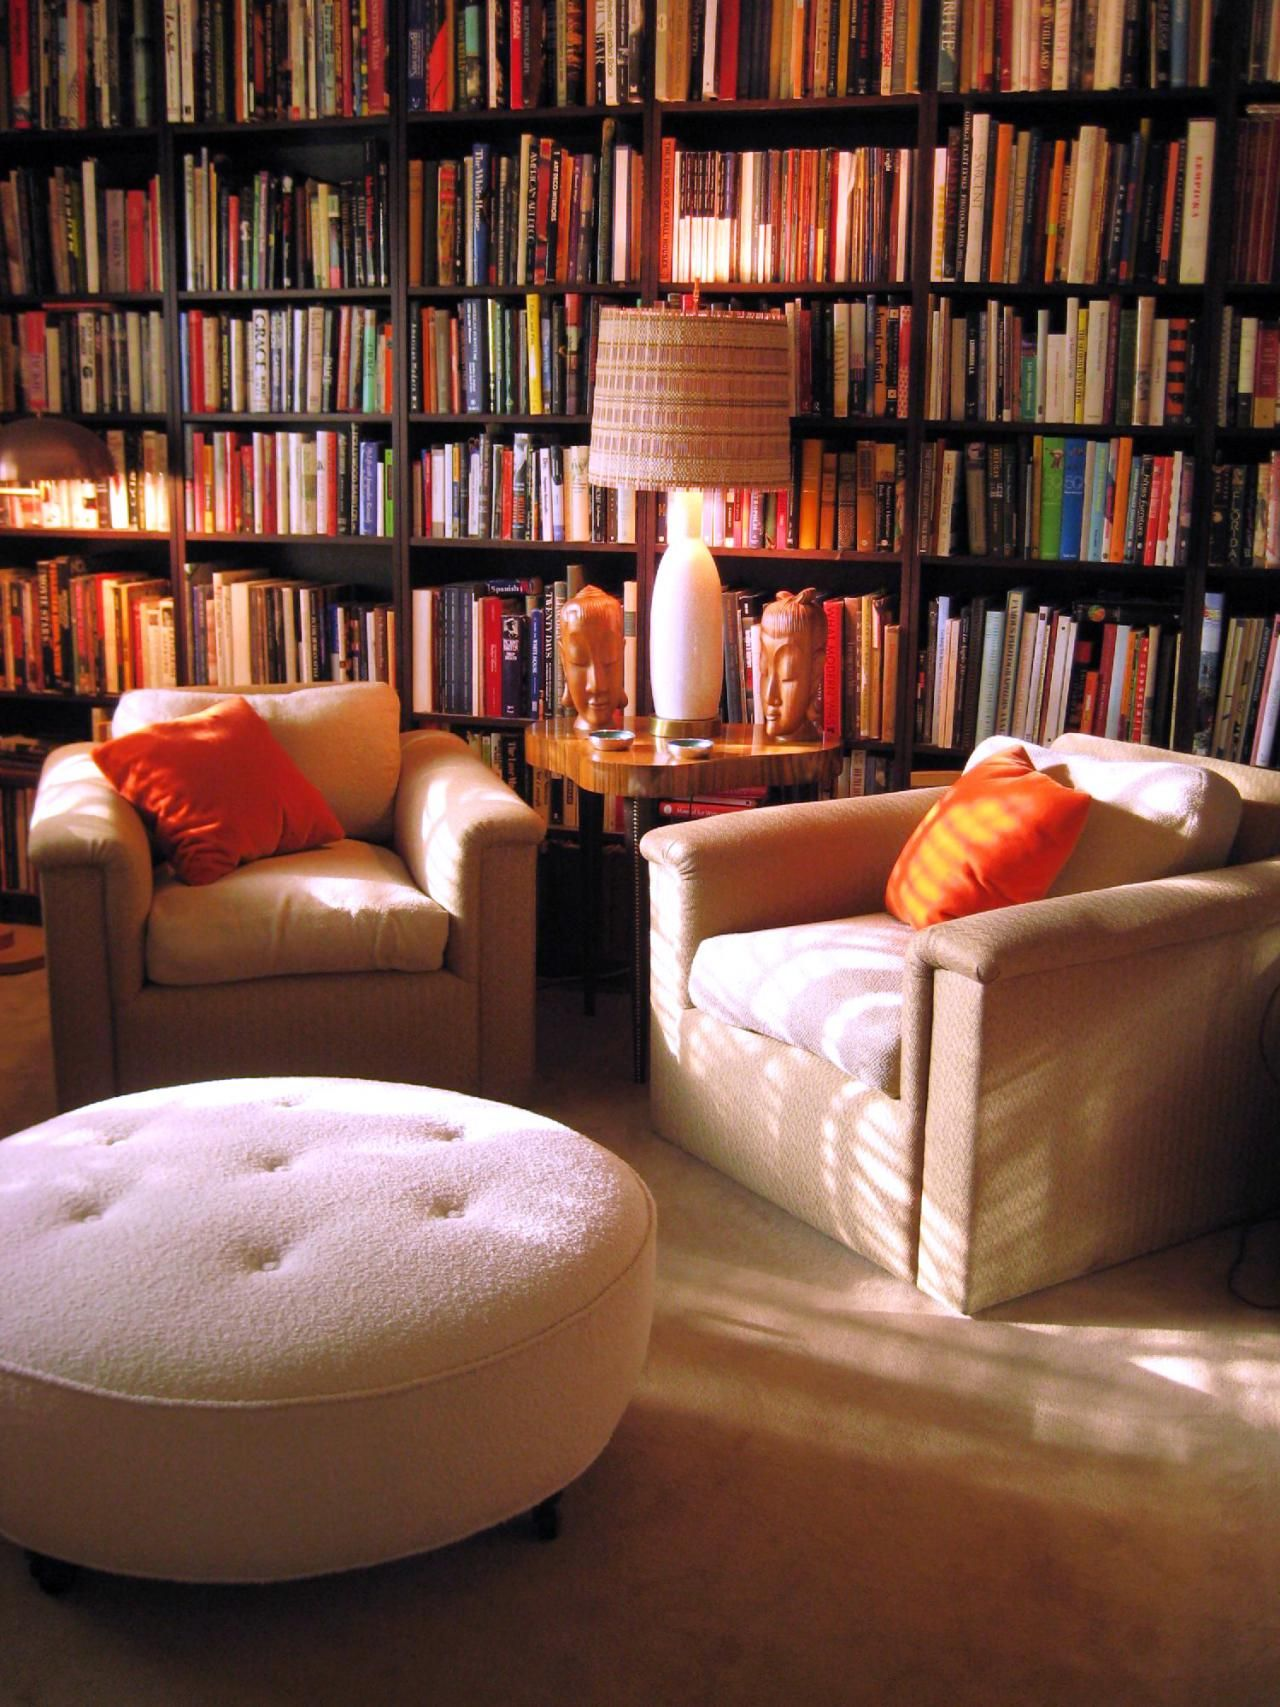 Home Design Ideas Book: Overstuffed Chairs, Library